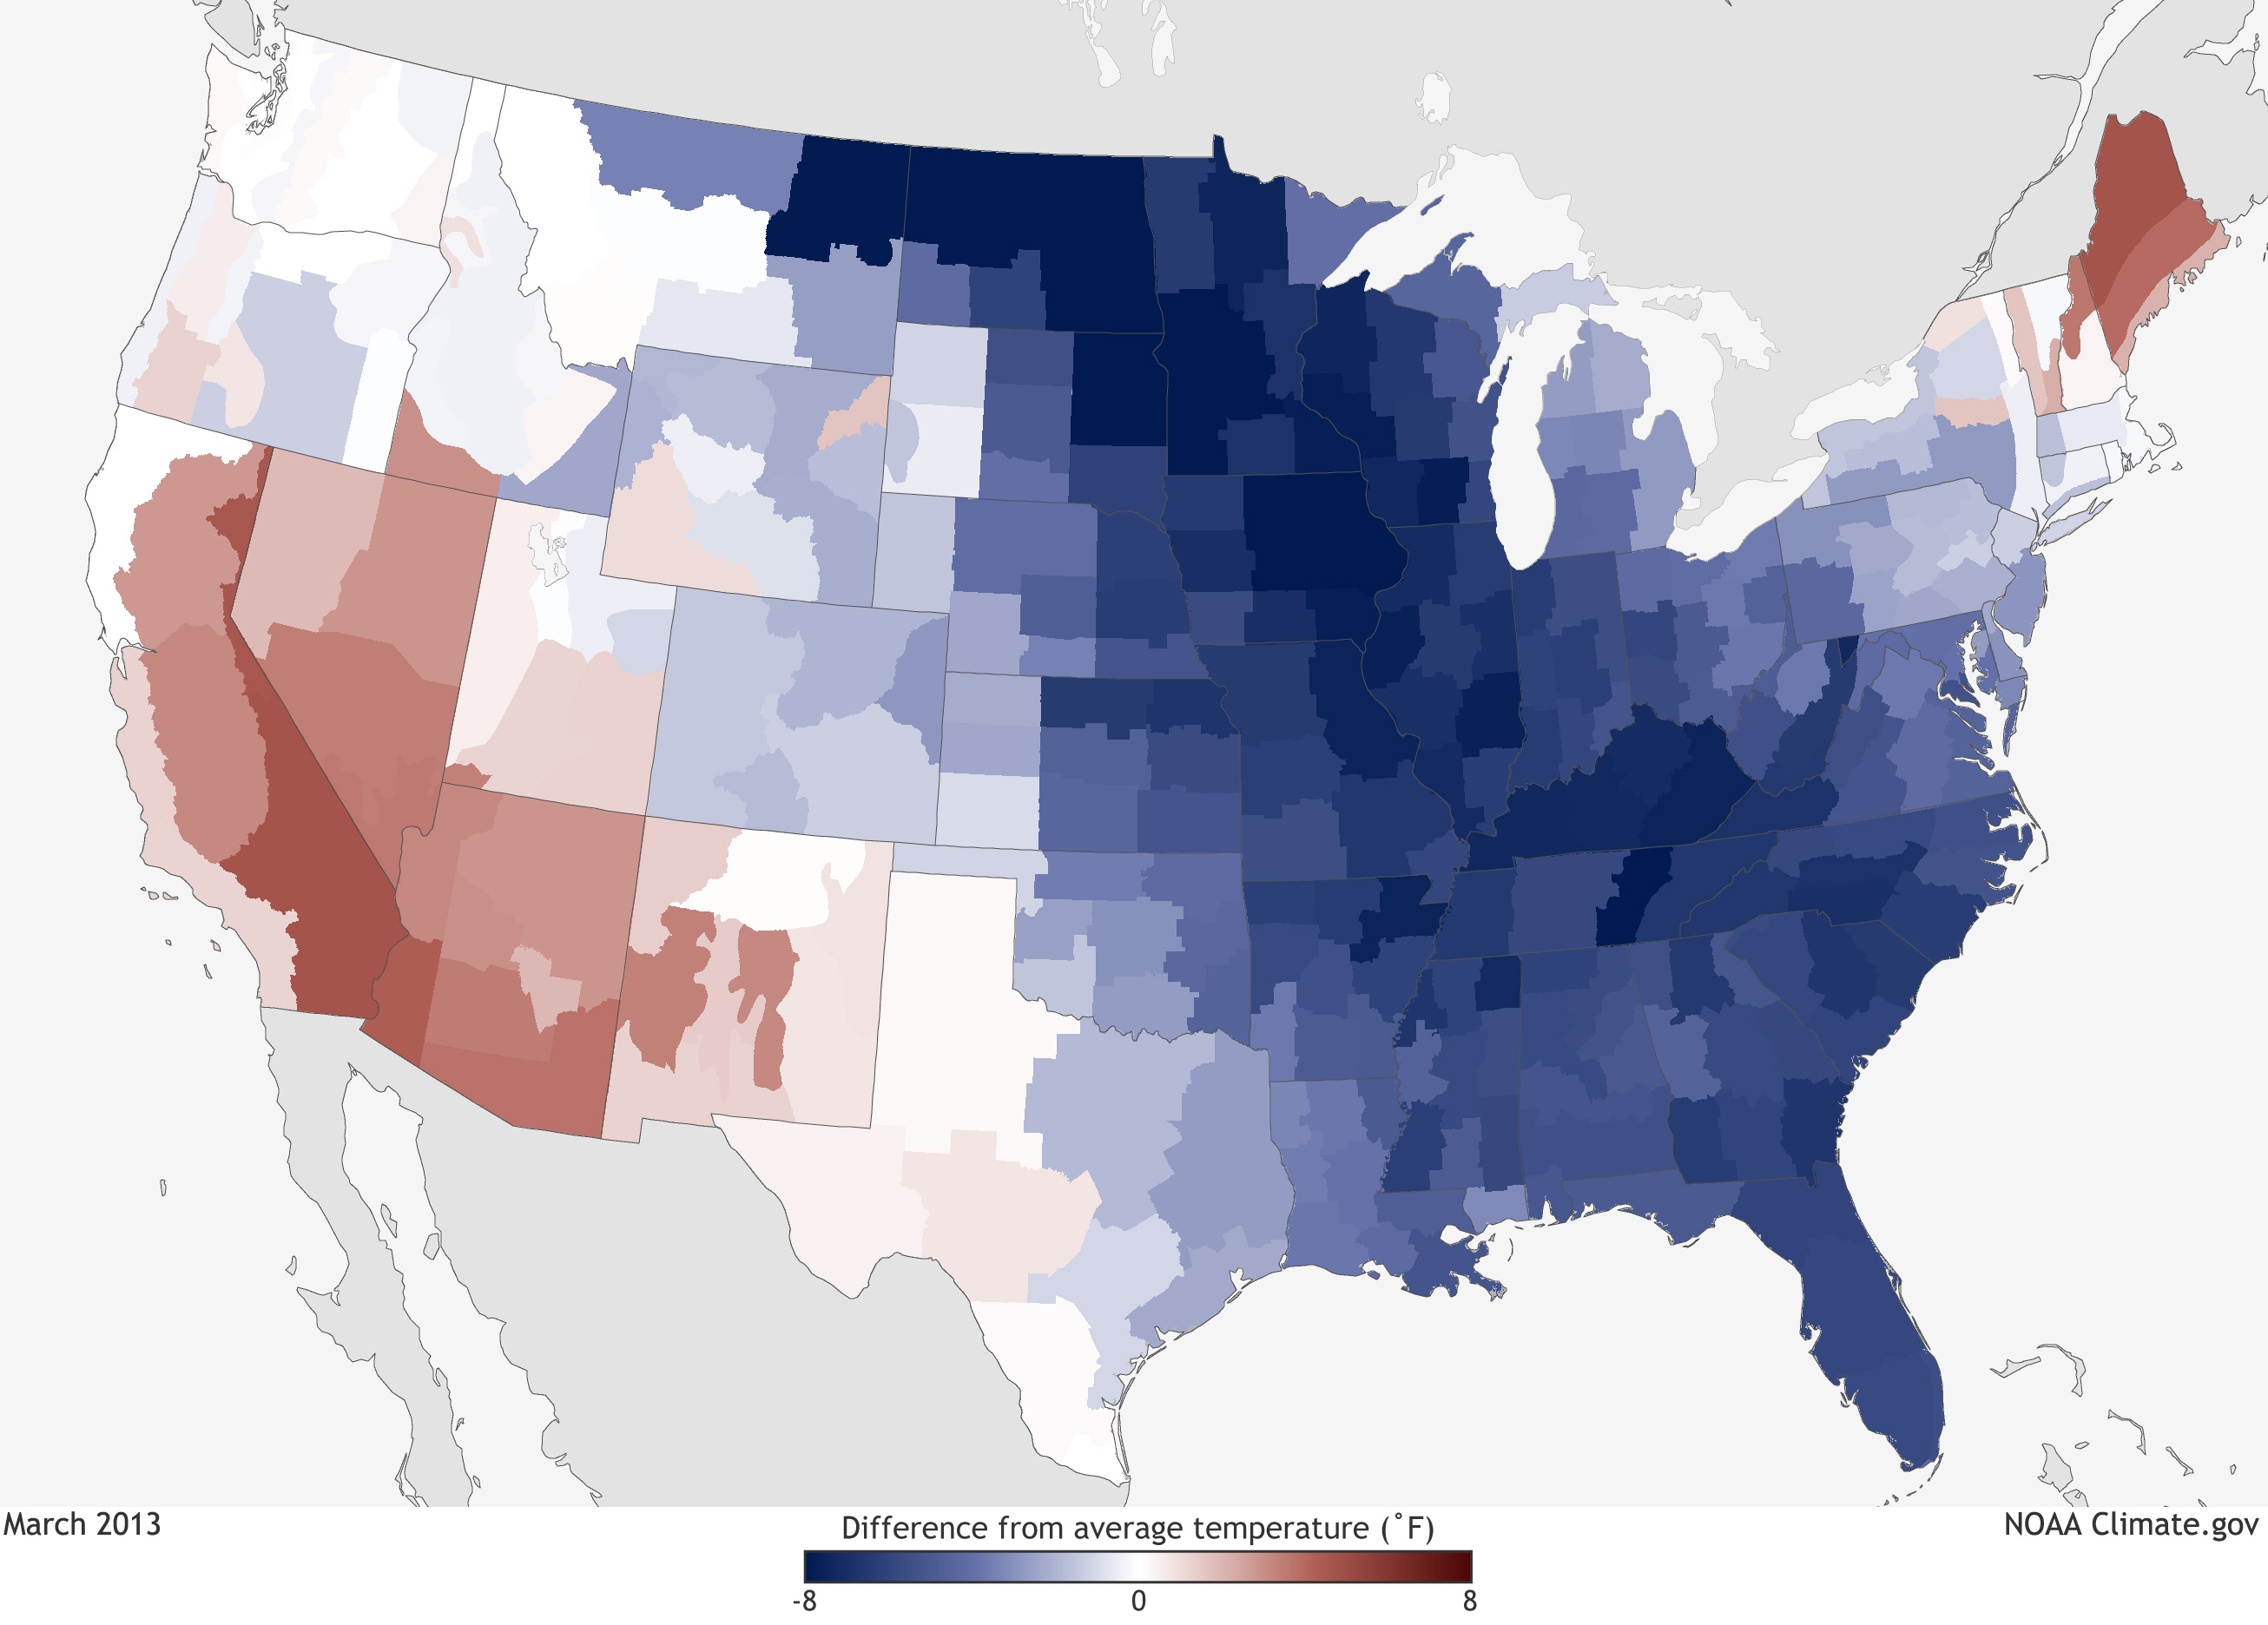 Departure from Average Temp - March 2013